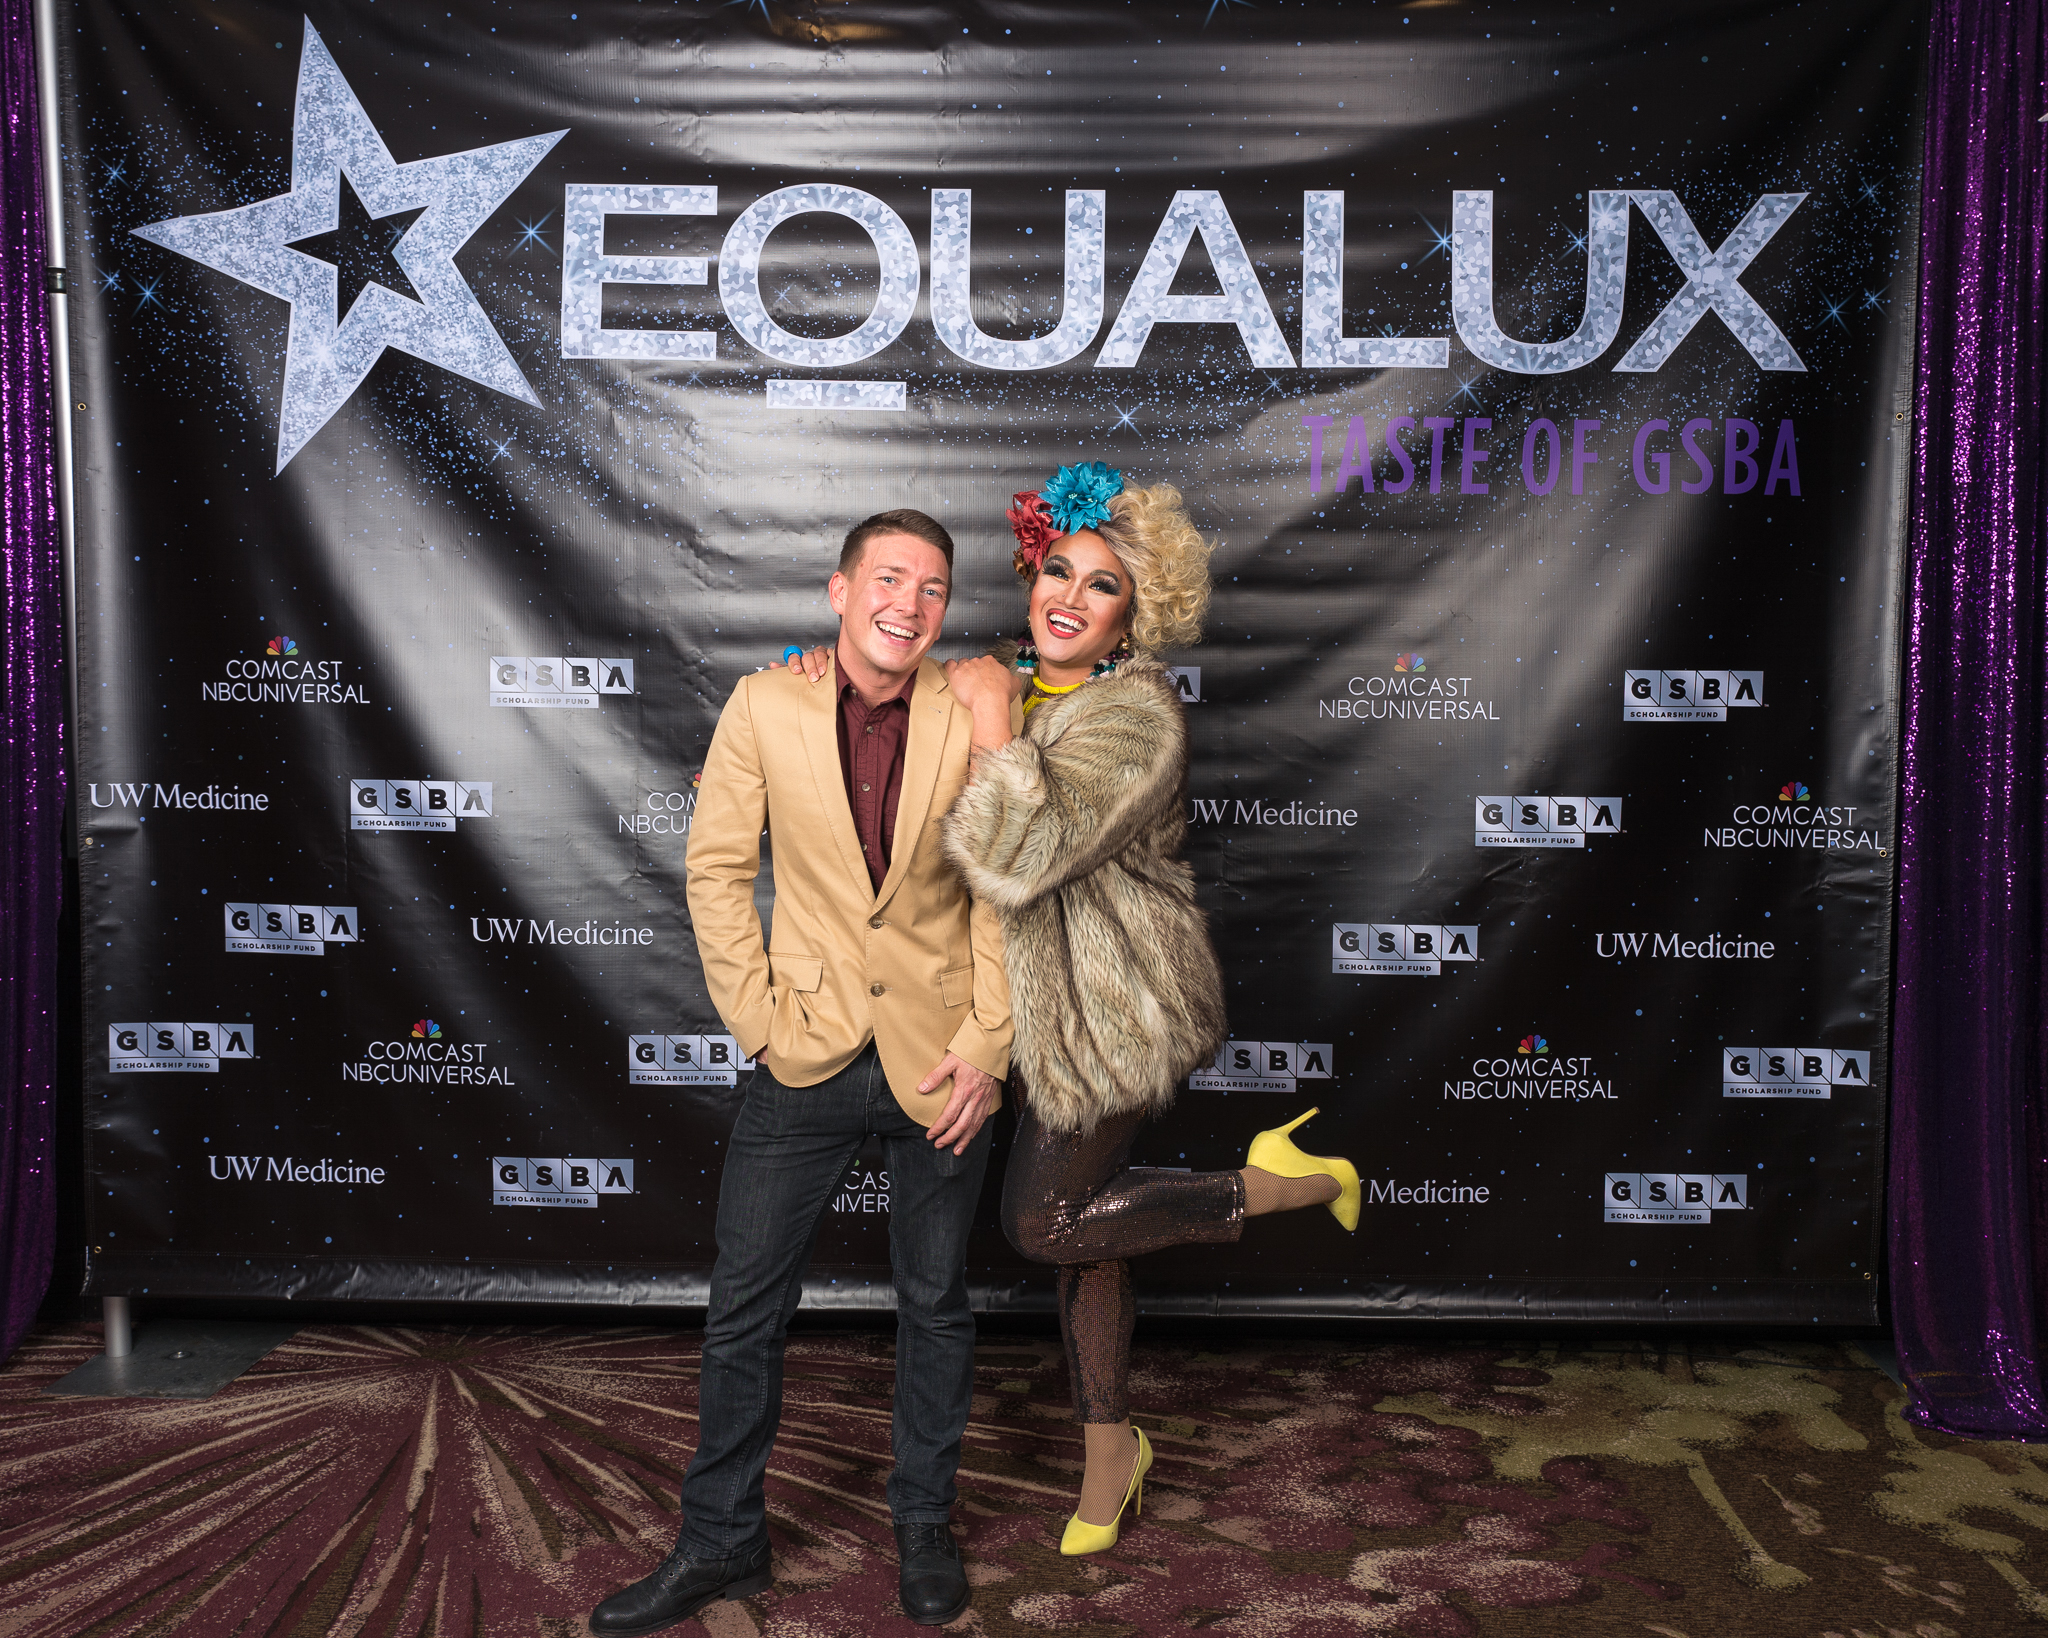 111718_GSBA EQUALUX at The Westin Seattle (Credit- Nate Gowdy)-12.jpg